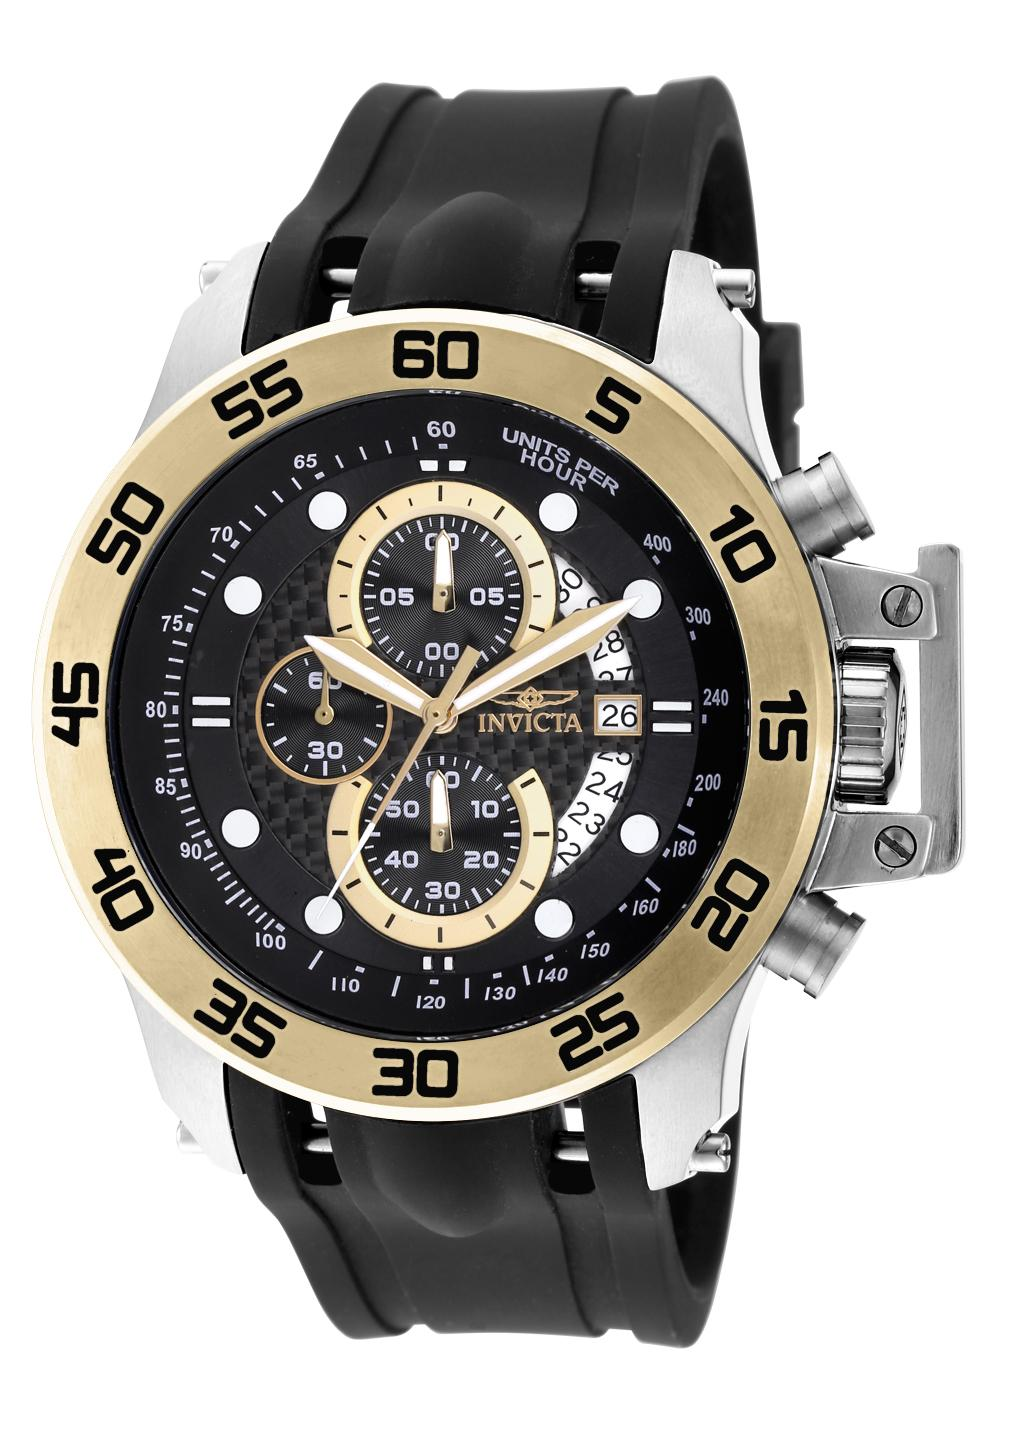 This watch features a stainless steel case and black silicone band with a buckle clasp. The stainless steel case features a black dial with luminous hands ...